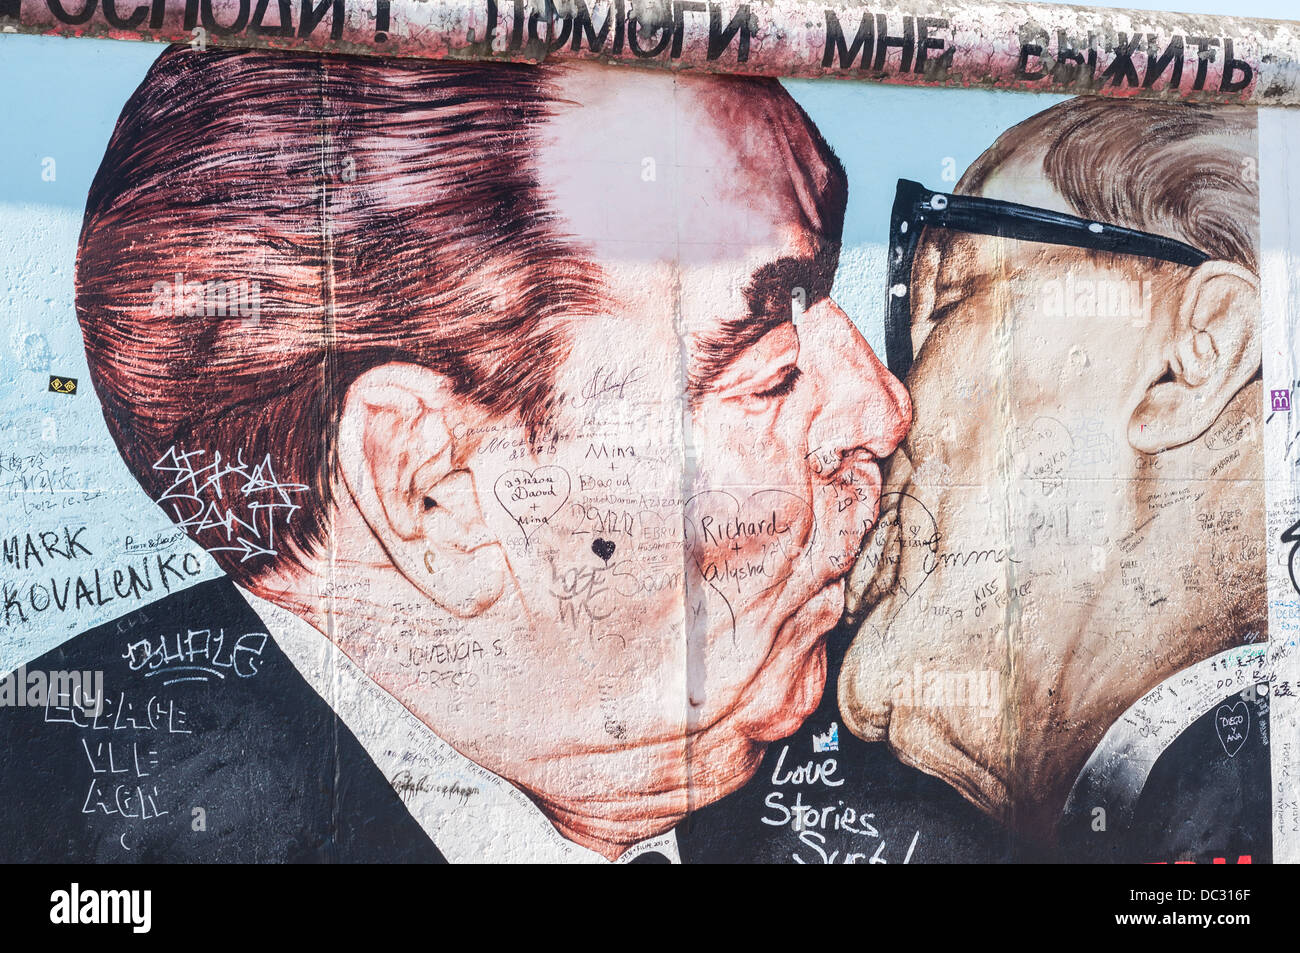 East Side Gallery, part of the Berlin Wall with graffiti, street art, brotherly kiss Breschnew and Honecker - Germany - Stock Image